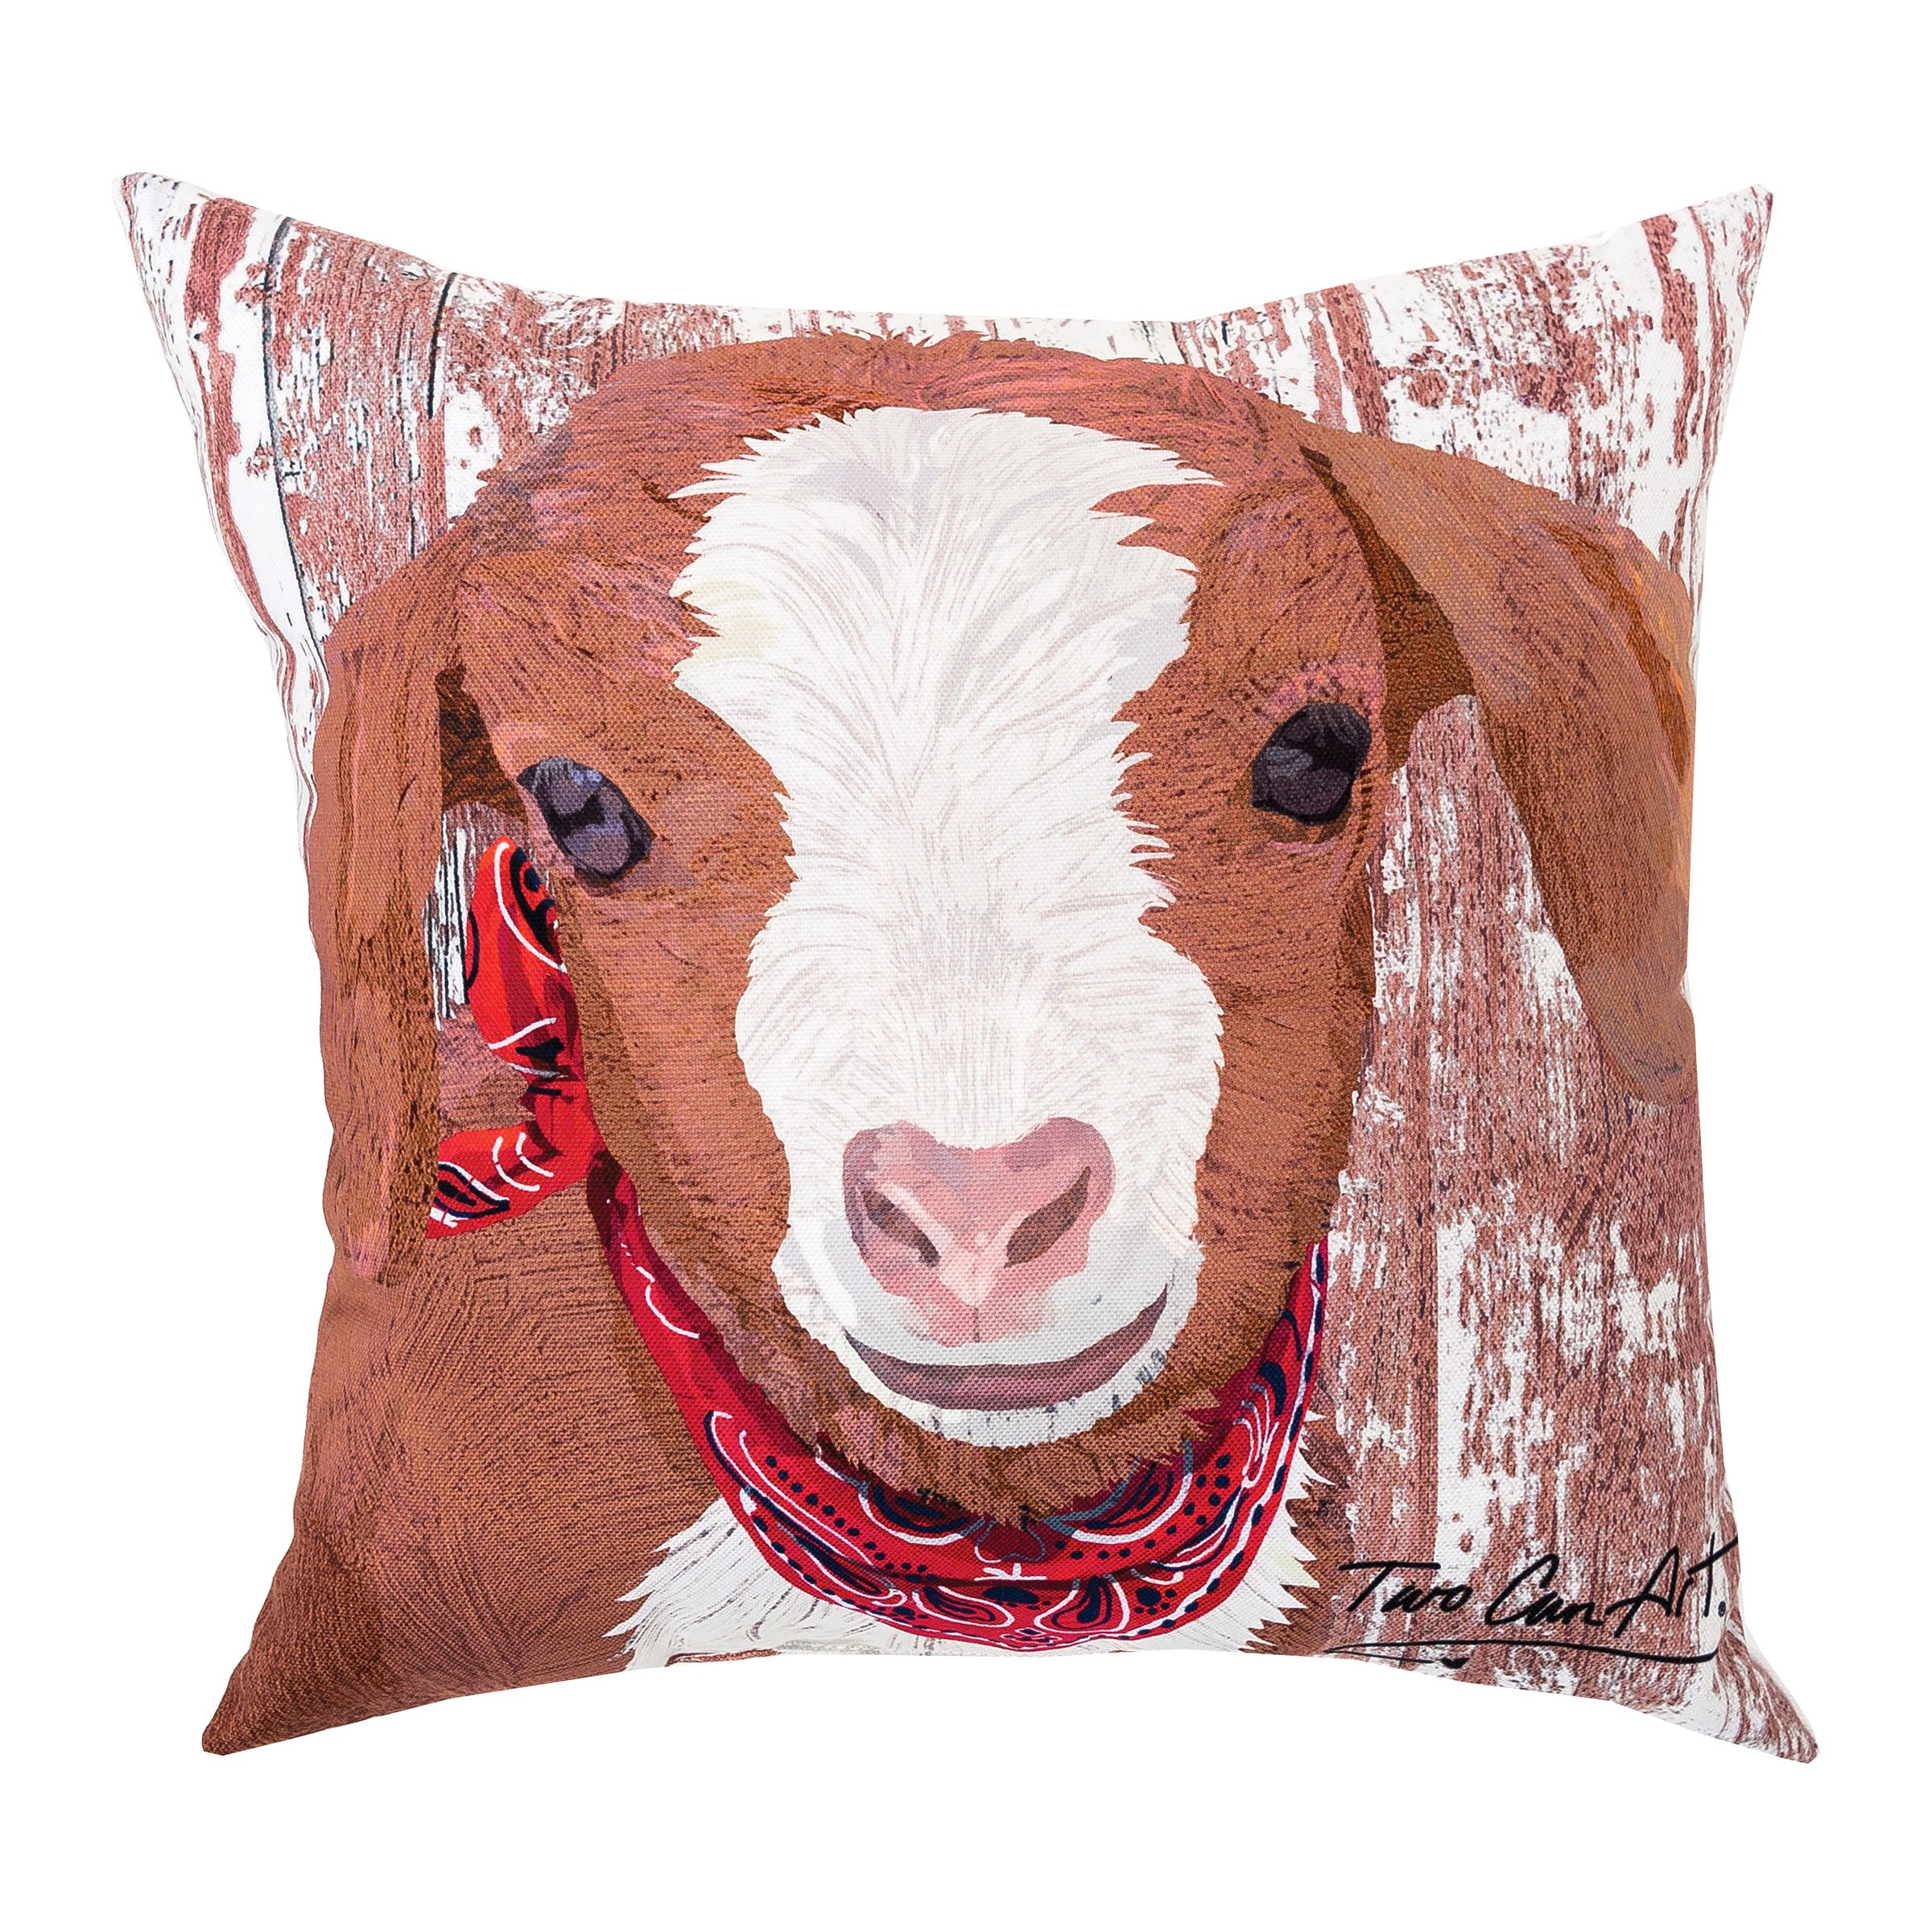 C&F Home Goat Indoor/Outdoor Pillow 18 x 18 White by C&F Home